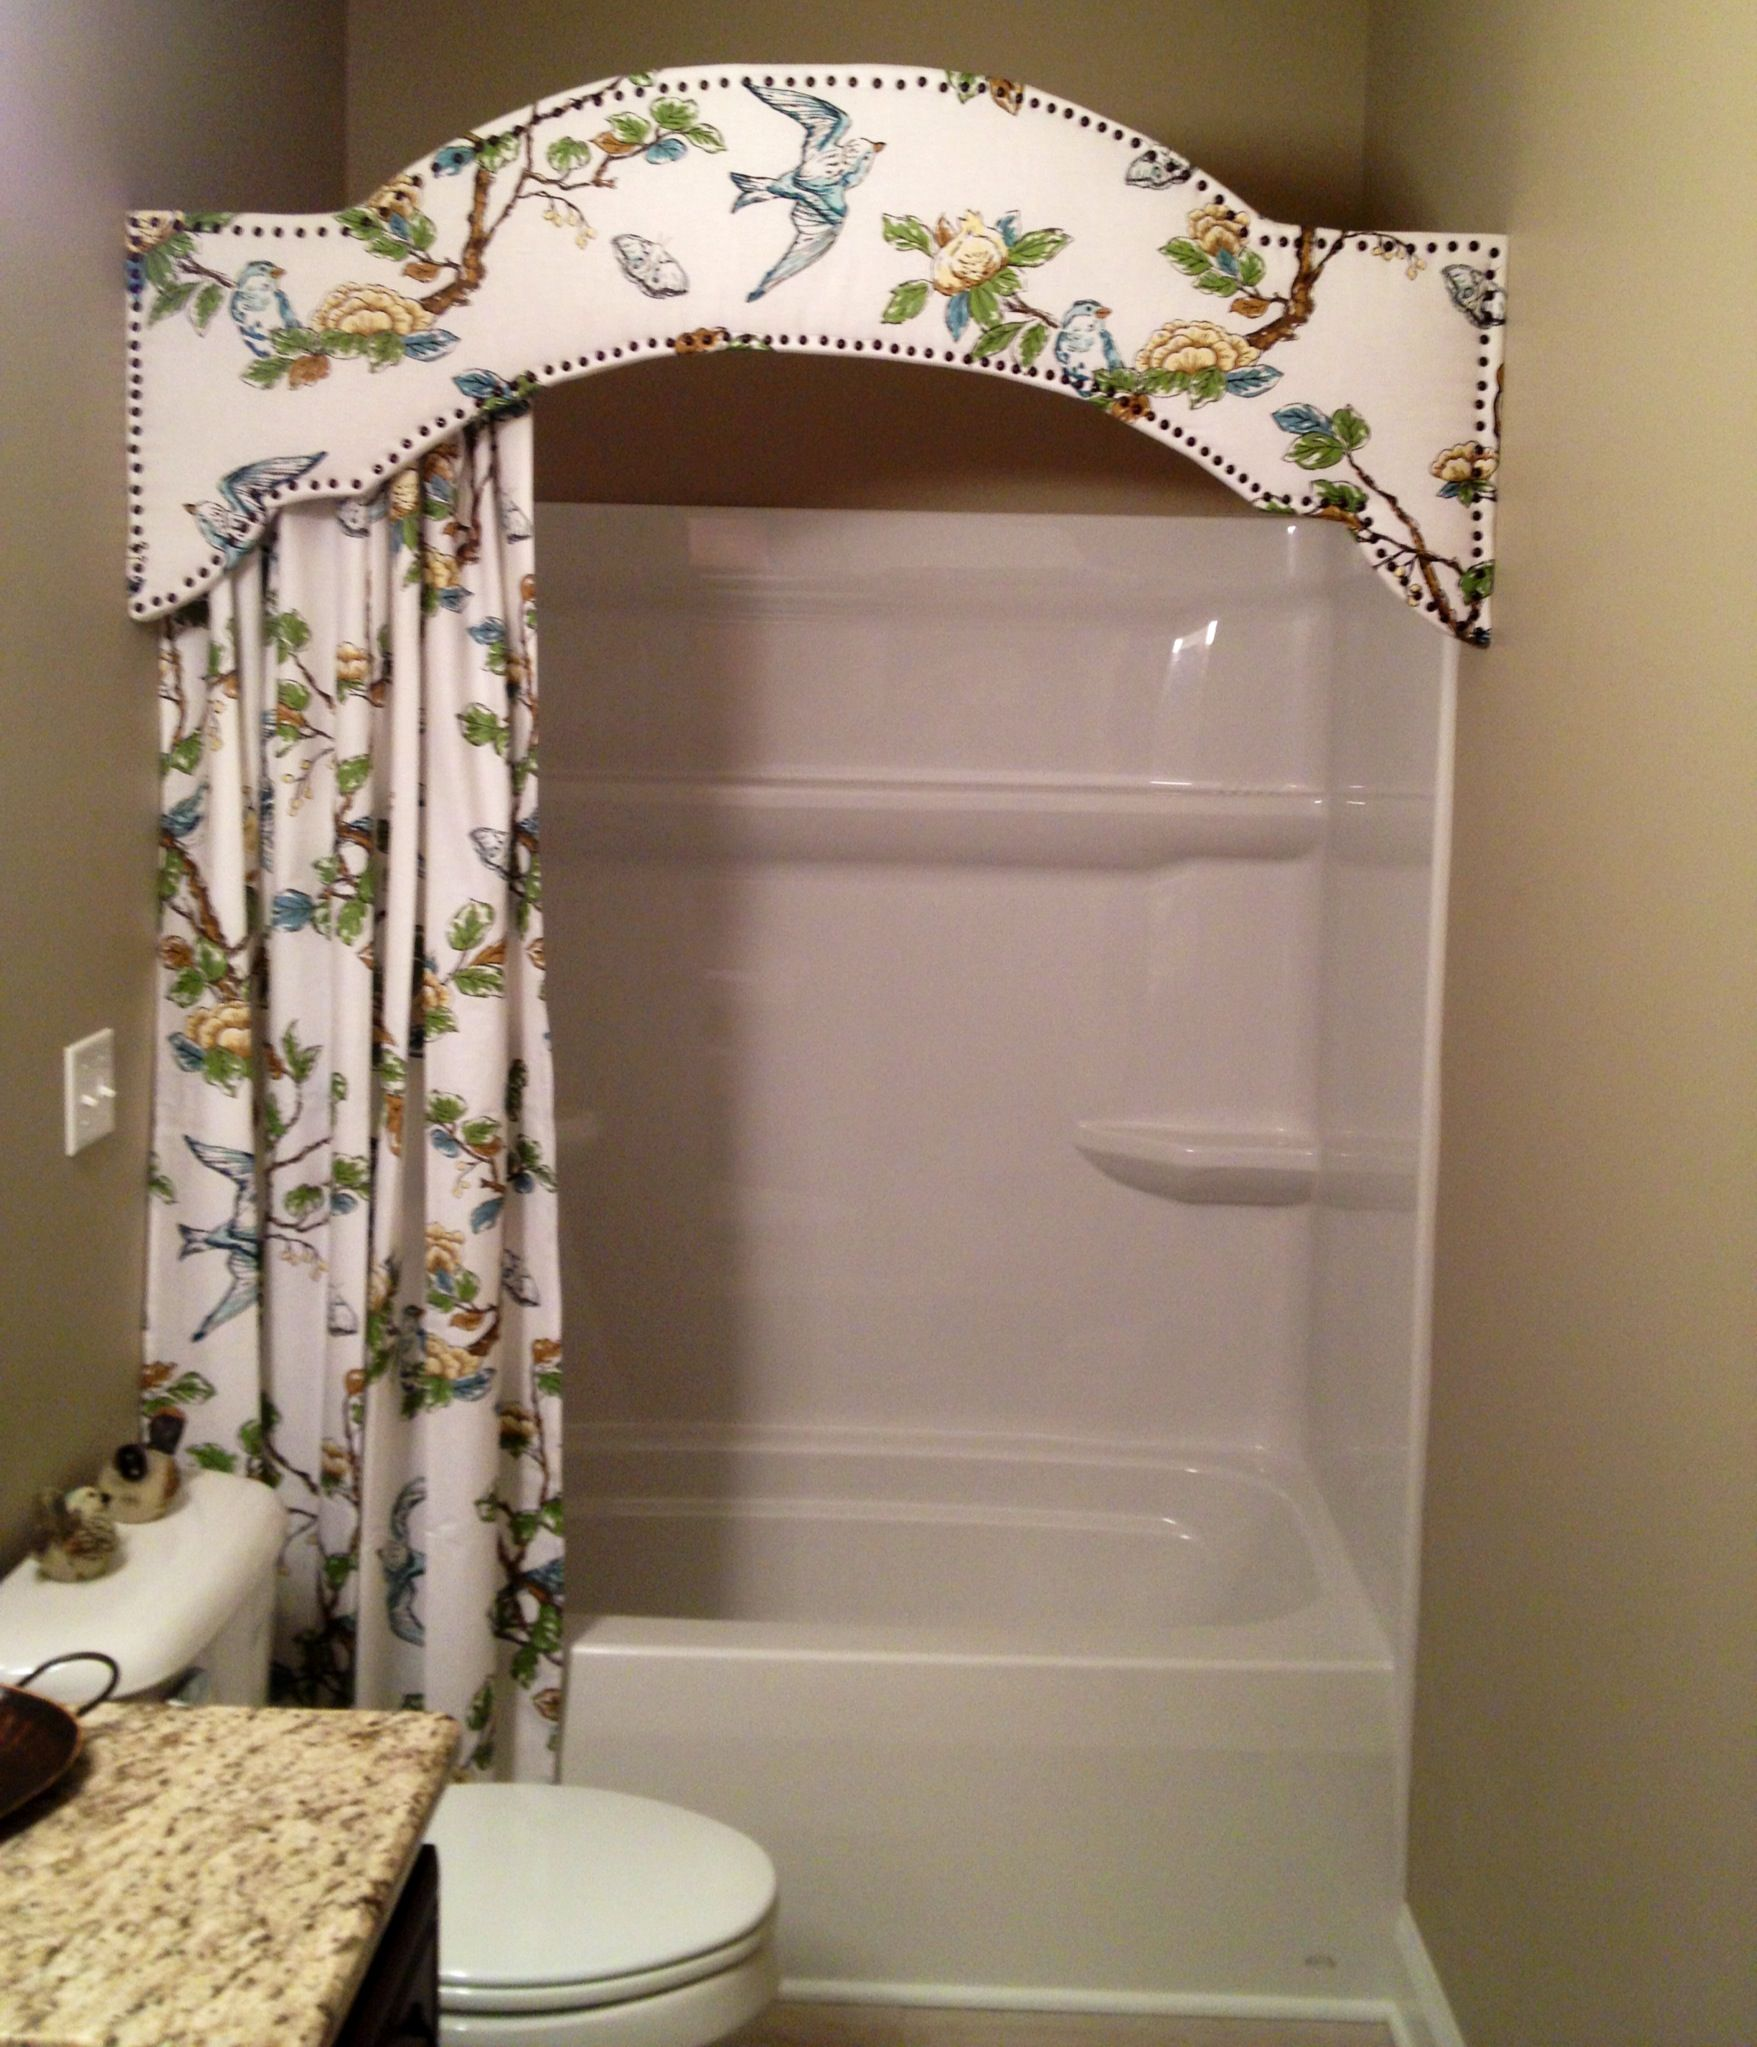 Split shower curtain ideas - Find This Pin And More On Home Decor Ideas